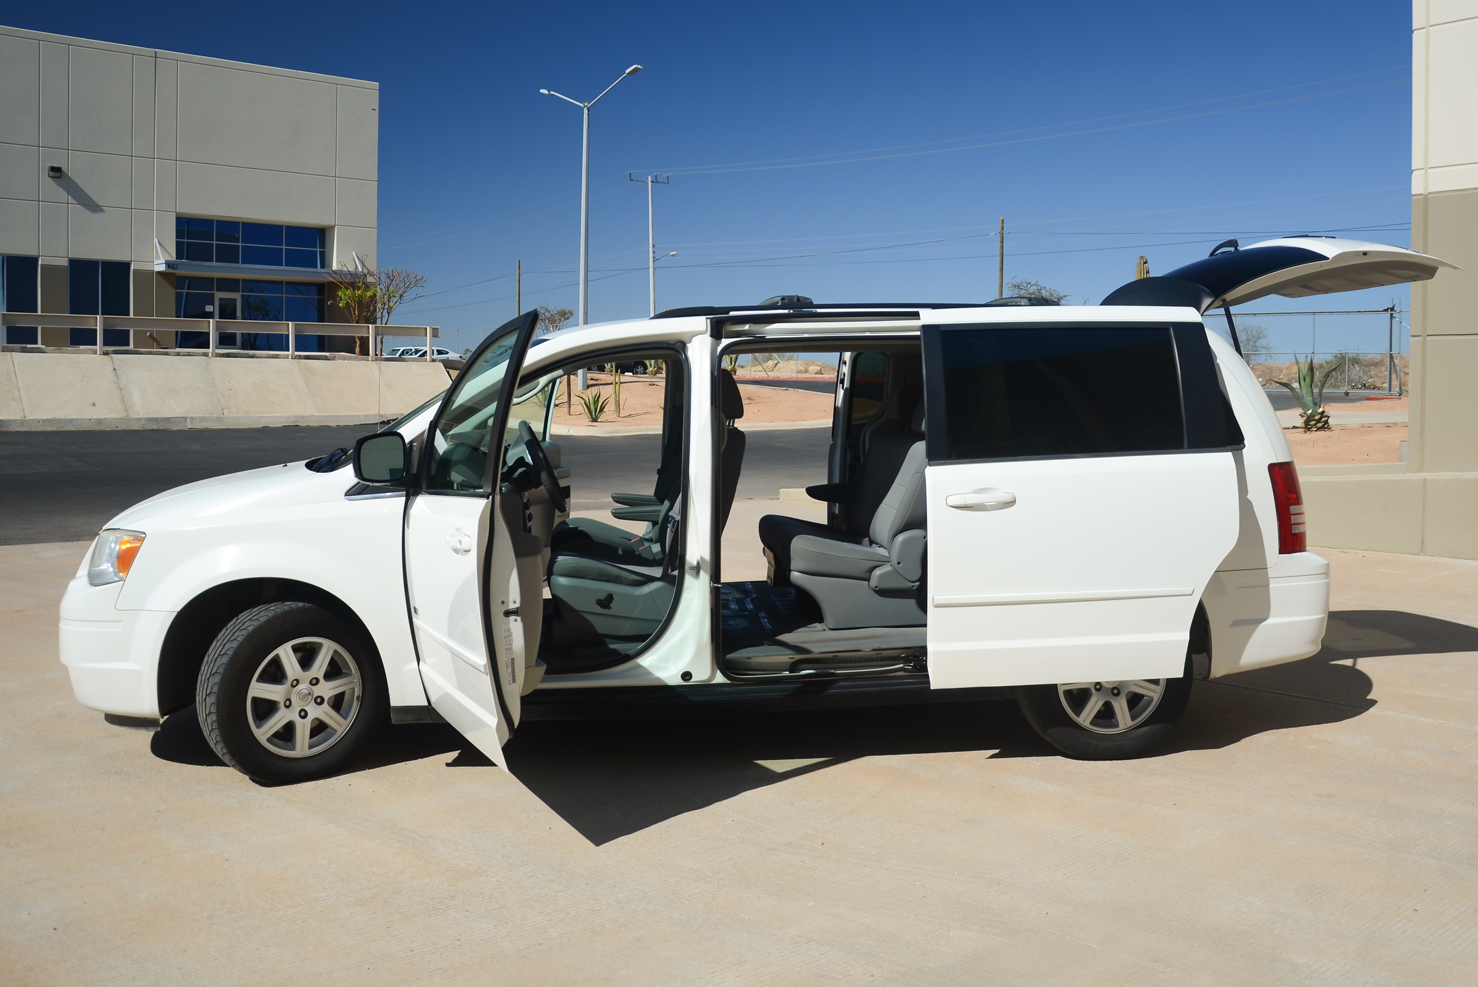 Chrysler Town & Country (Vans Familiares)